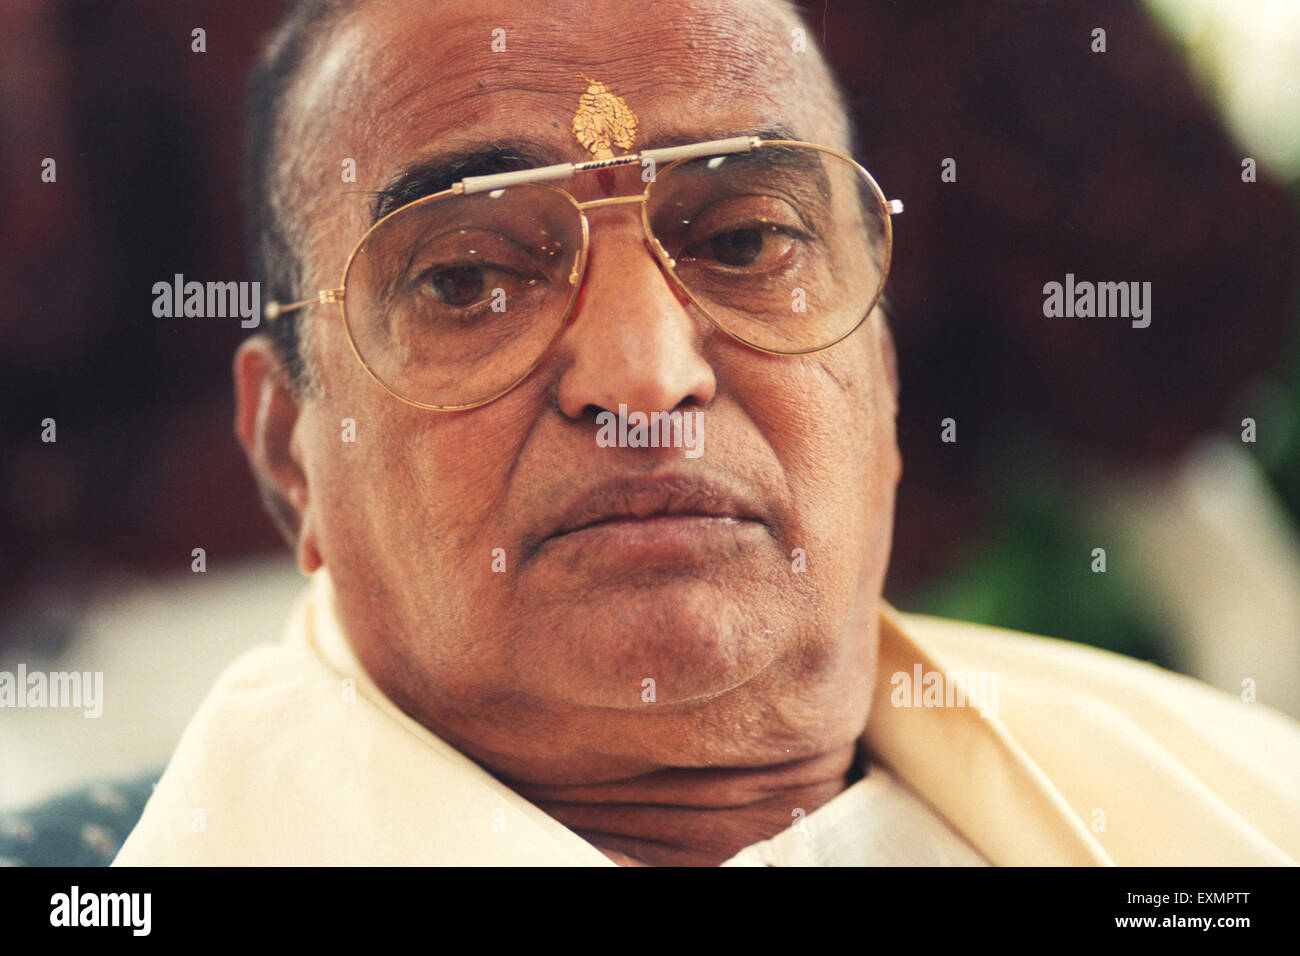 n t rama rao heightn t rama rao jr, n t rama rao, n t rama rao jr movie list, n t rama rao death, n t rama rao movies, n t rama rao jr wiki, n t rama rao family tree, n t rama rao movies list, n t rama rao wiki, n t rama rao hit songs, n t rama rao jr movies, n t rama rao family picture, n t rama rao jr biography, n t rama rao photos, n t rama rao jr movies in hindi, n.t.rama rao old songs, n t rama rao jr raakasi raakasi, n t rama rao height, n t rama rao songs, n t rama rao caste